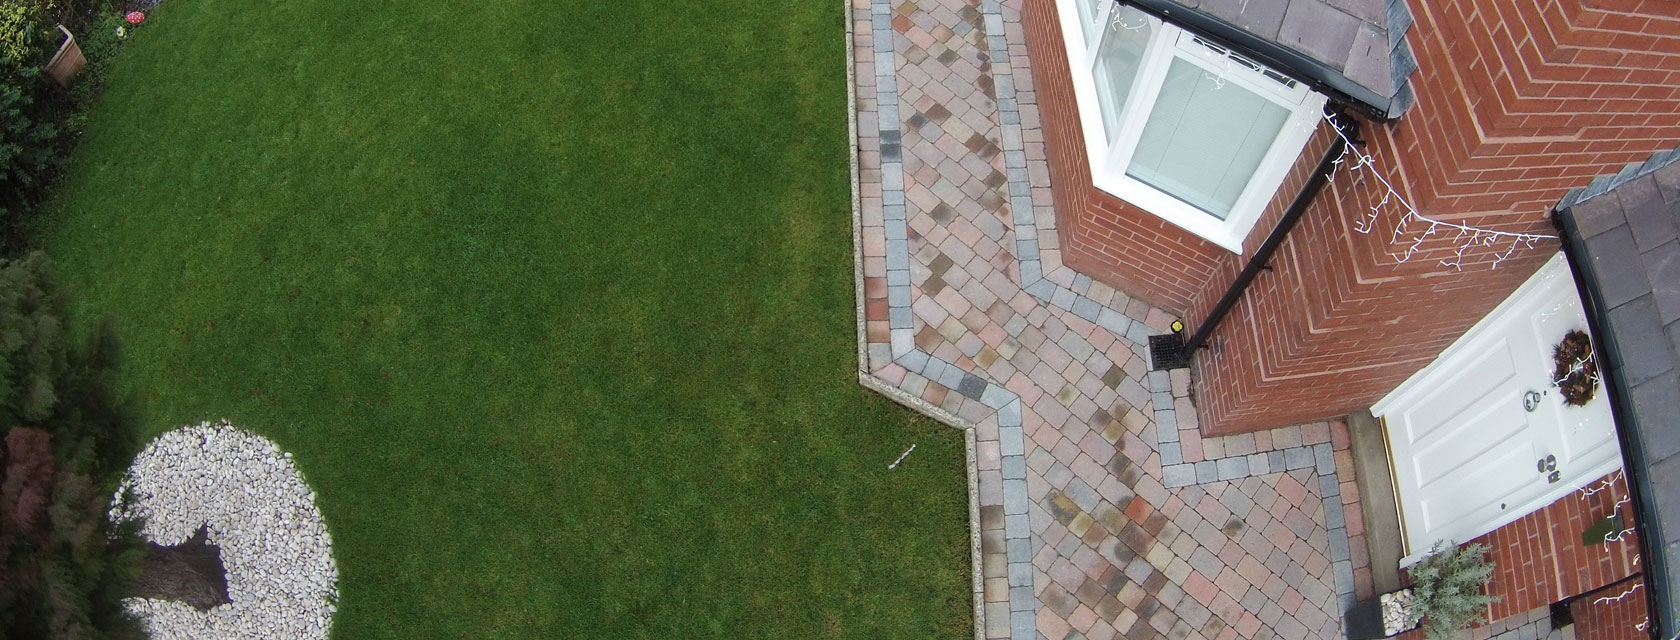 New path using woburn rumbled block paving